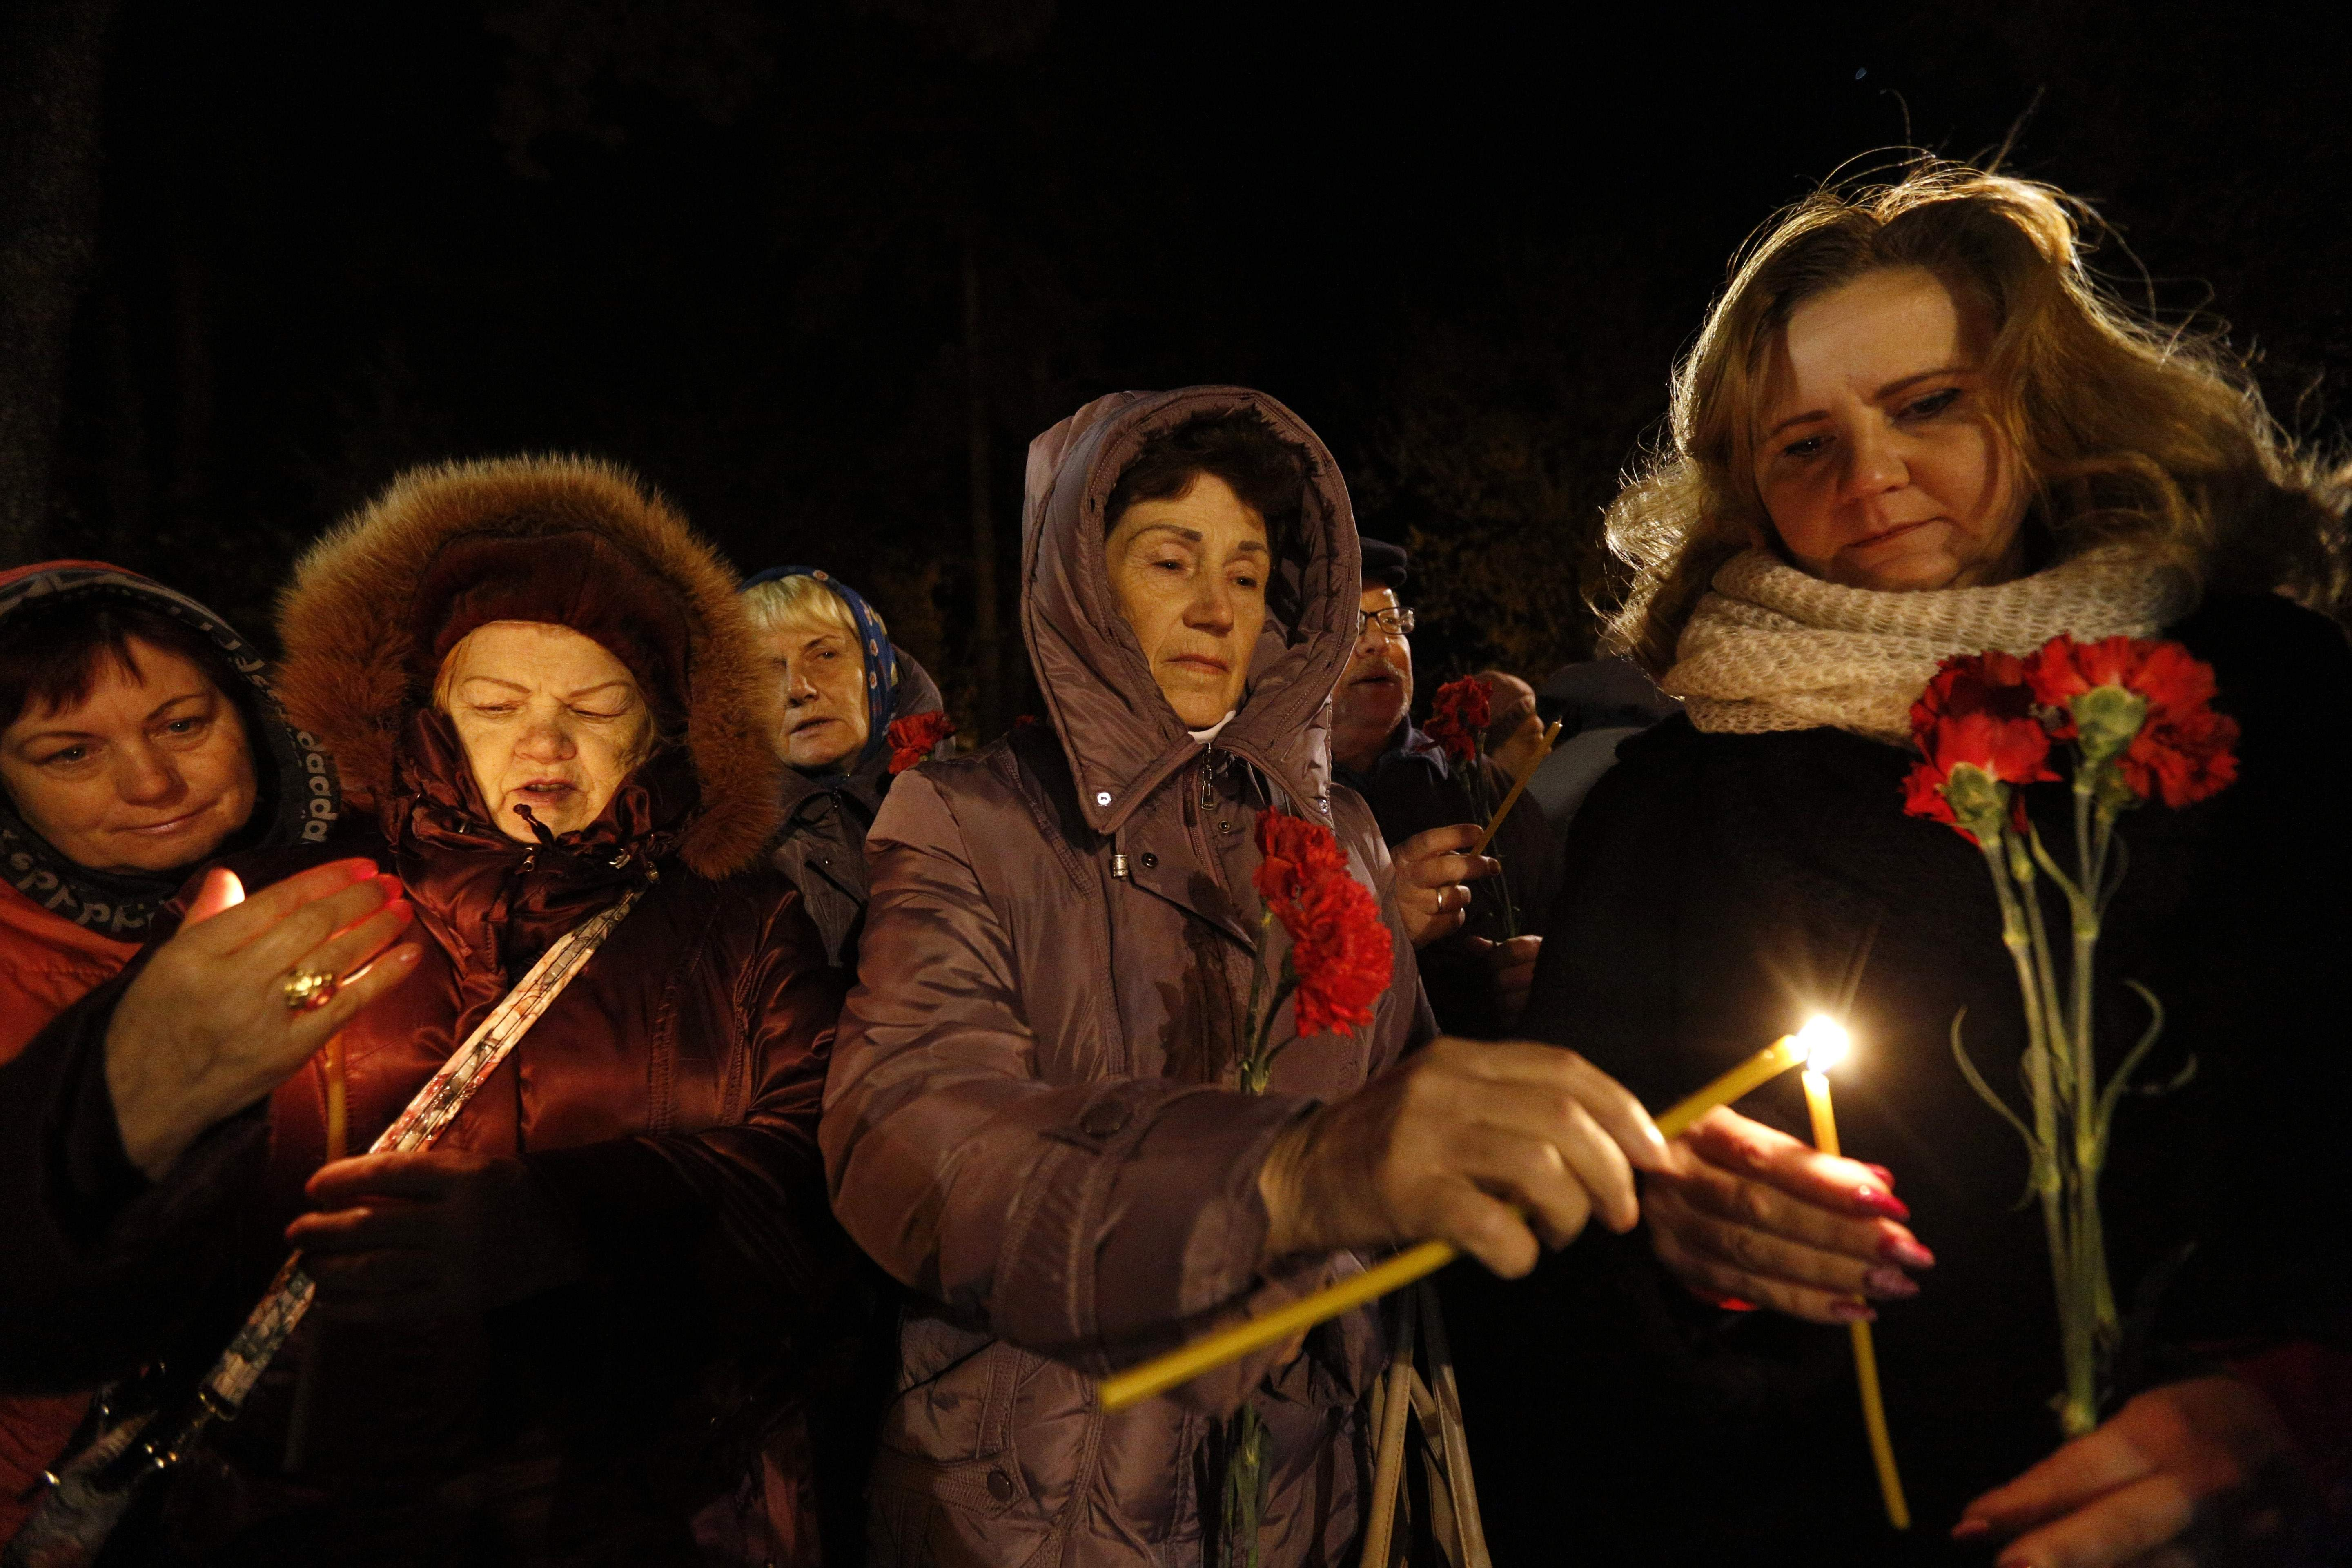 Ukrainians light candles at the memorial to the victims of the Chernobyl nuclear disaster, in Kiev, Ukraine, Wednesday, April 26, 2017. Ukraine marked the 31st anniversary of the Chernobyl nuclear power plant explosion. THE ASSOCIATED PRESS